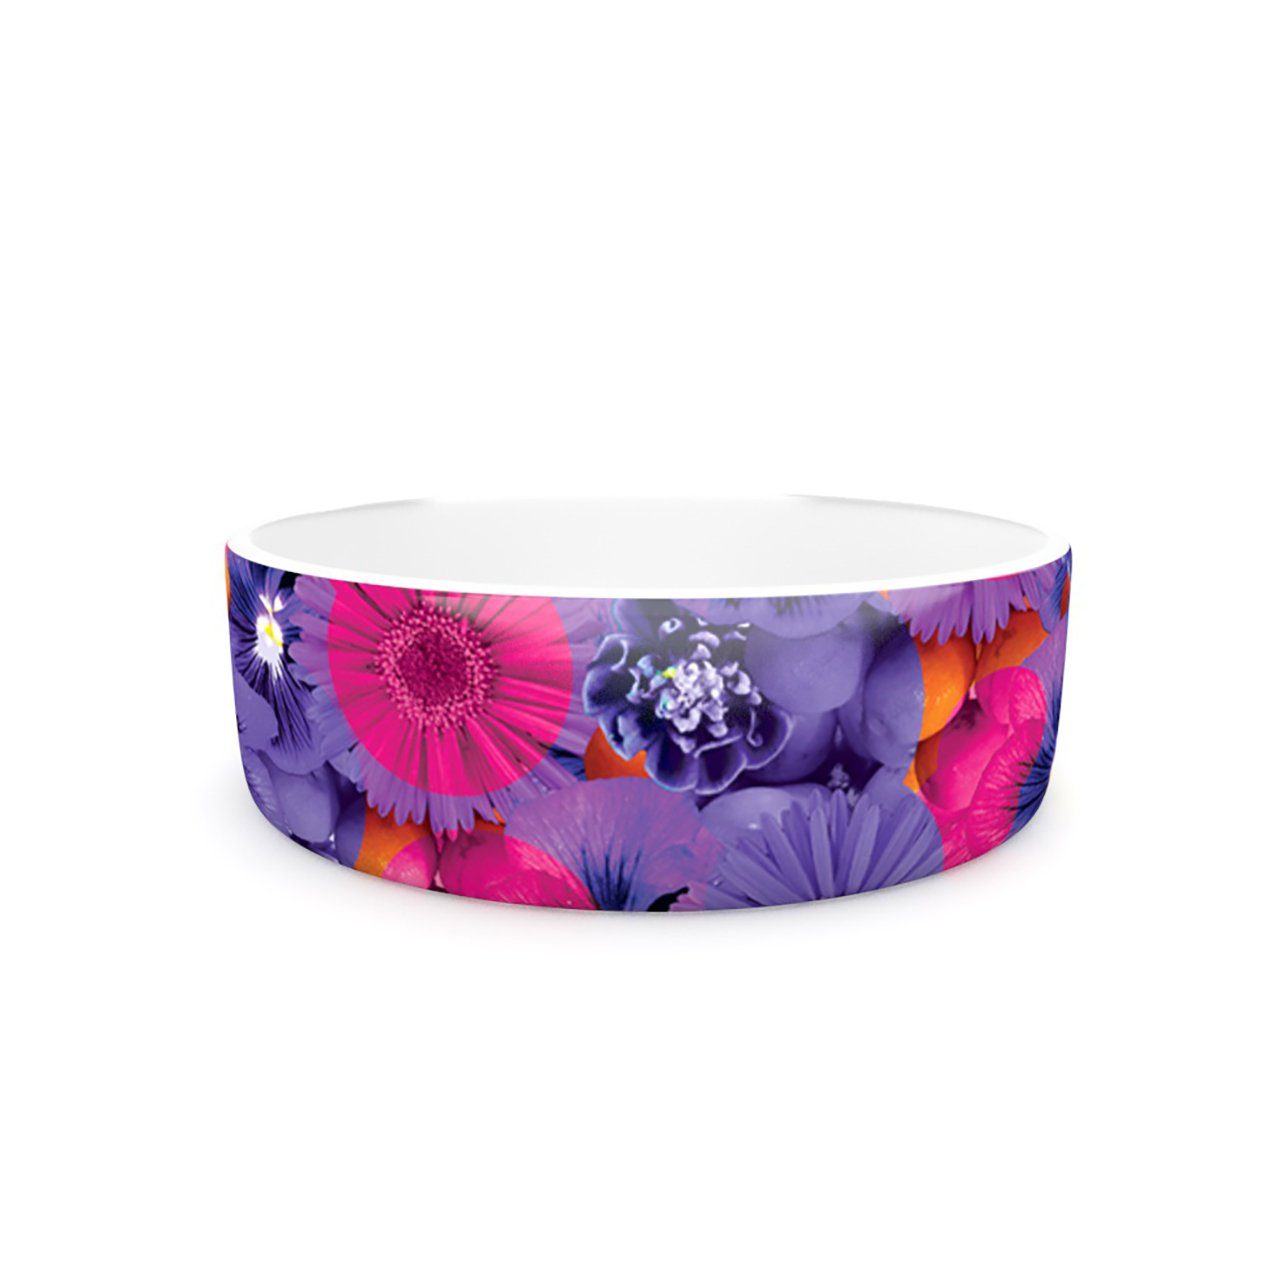 Kess InHouse Akwaflorell Find the Tiger  Pet Bowl, 7-Inch, Purple Pink